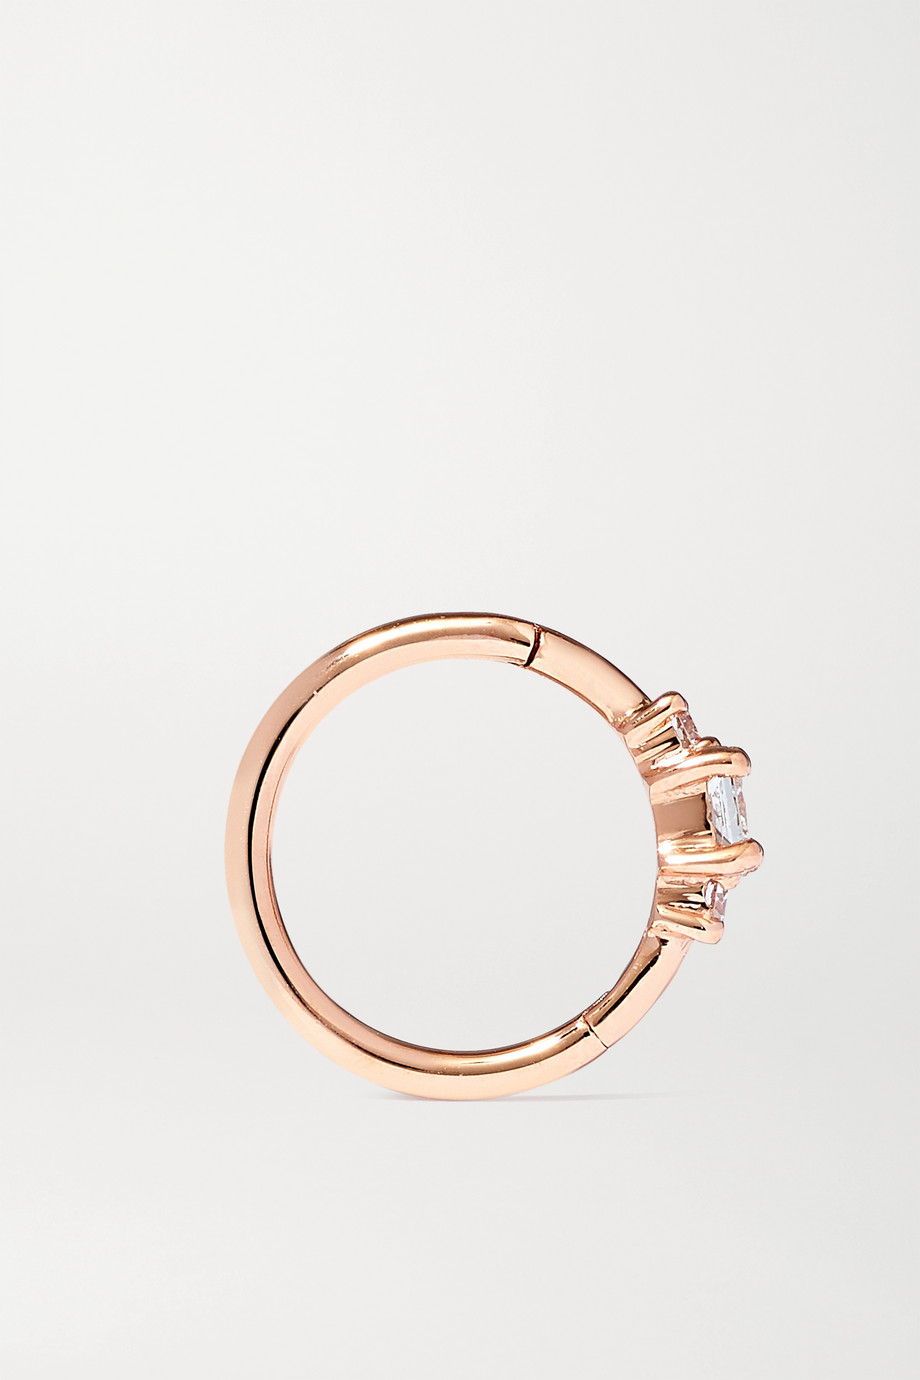 MARIA TASH 18-karat rose gold diamond hoop earring